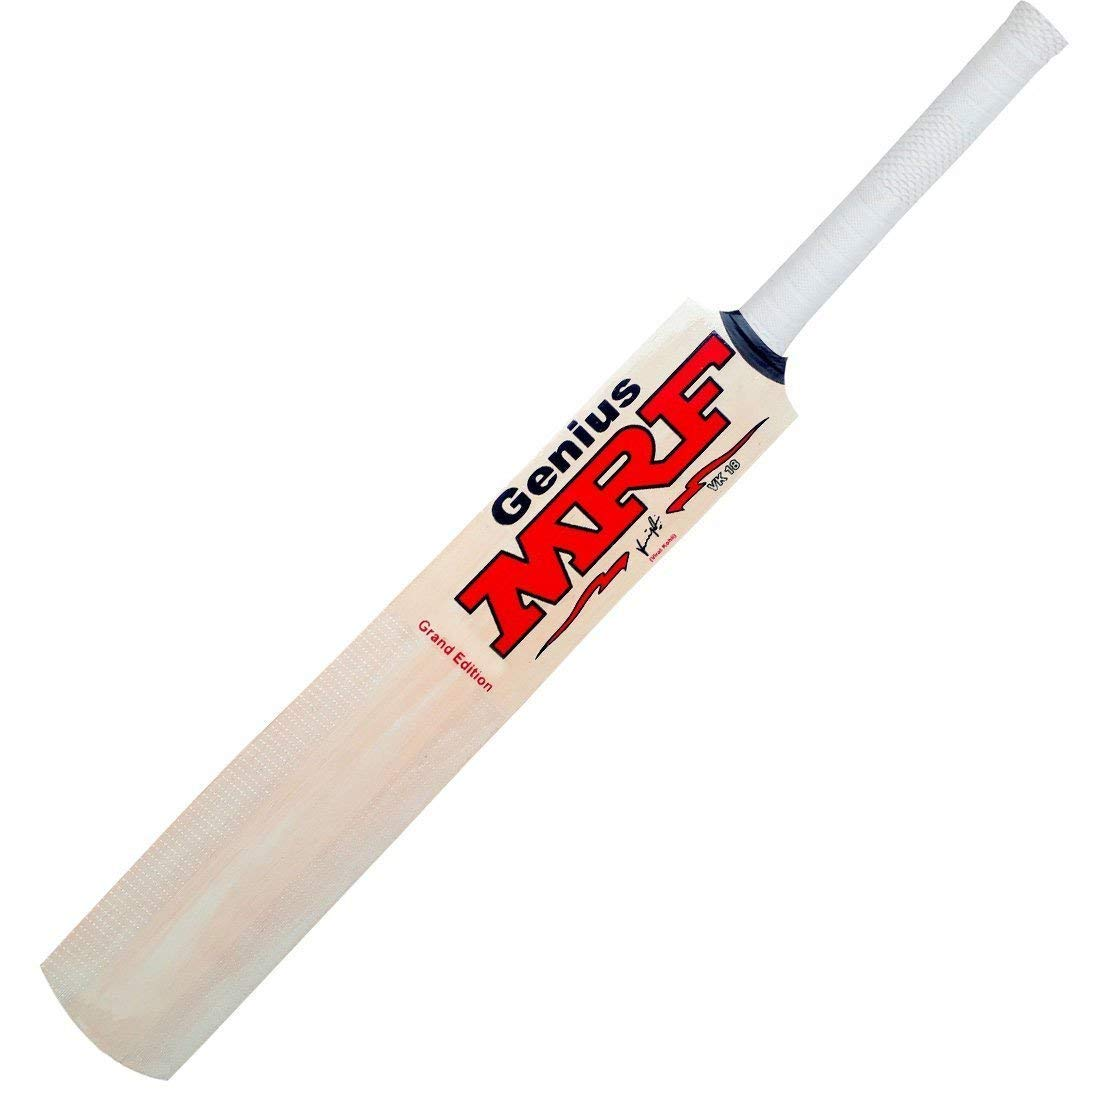 3d6af2f27 MRF Genius Virat Kohli Kashmir Willow Cricket Bat